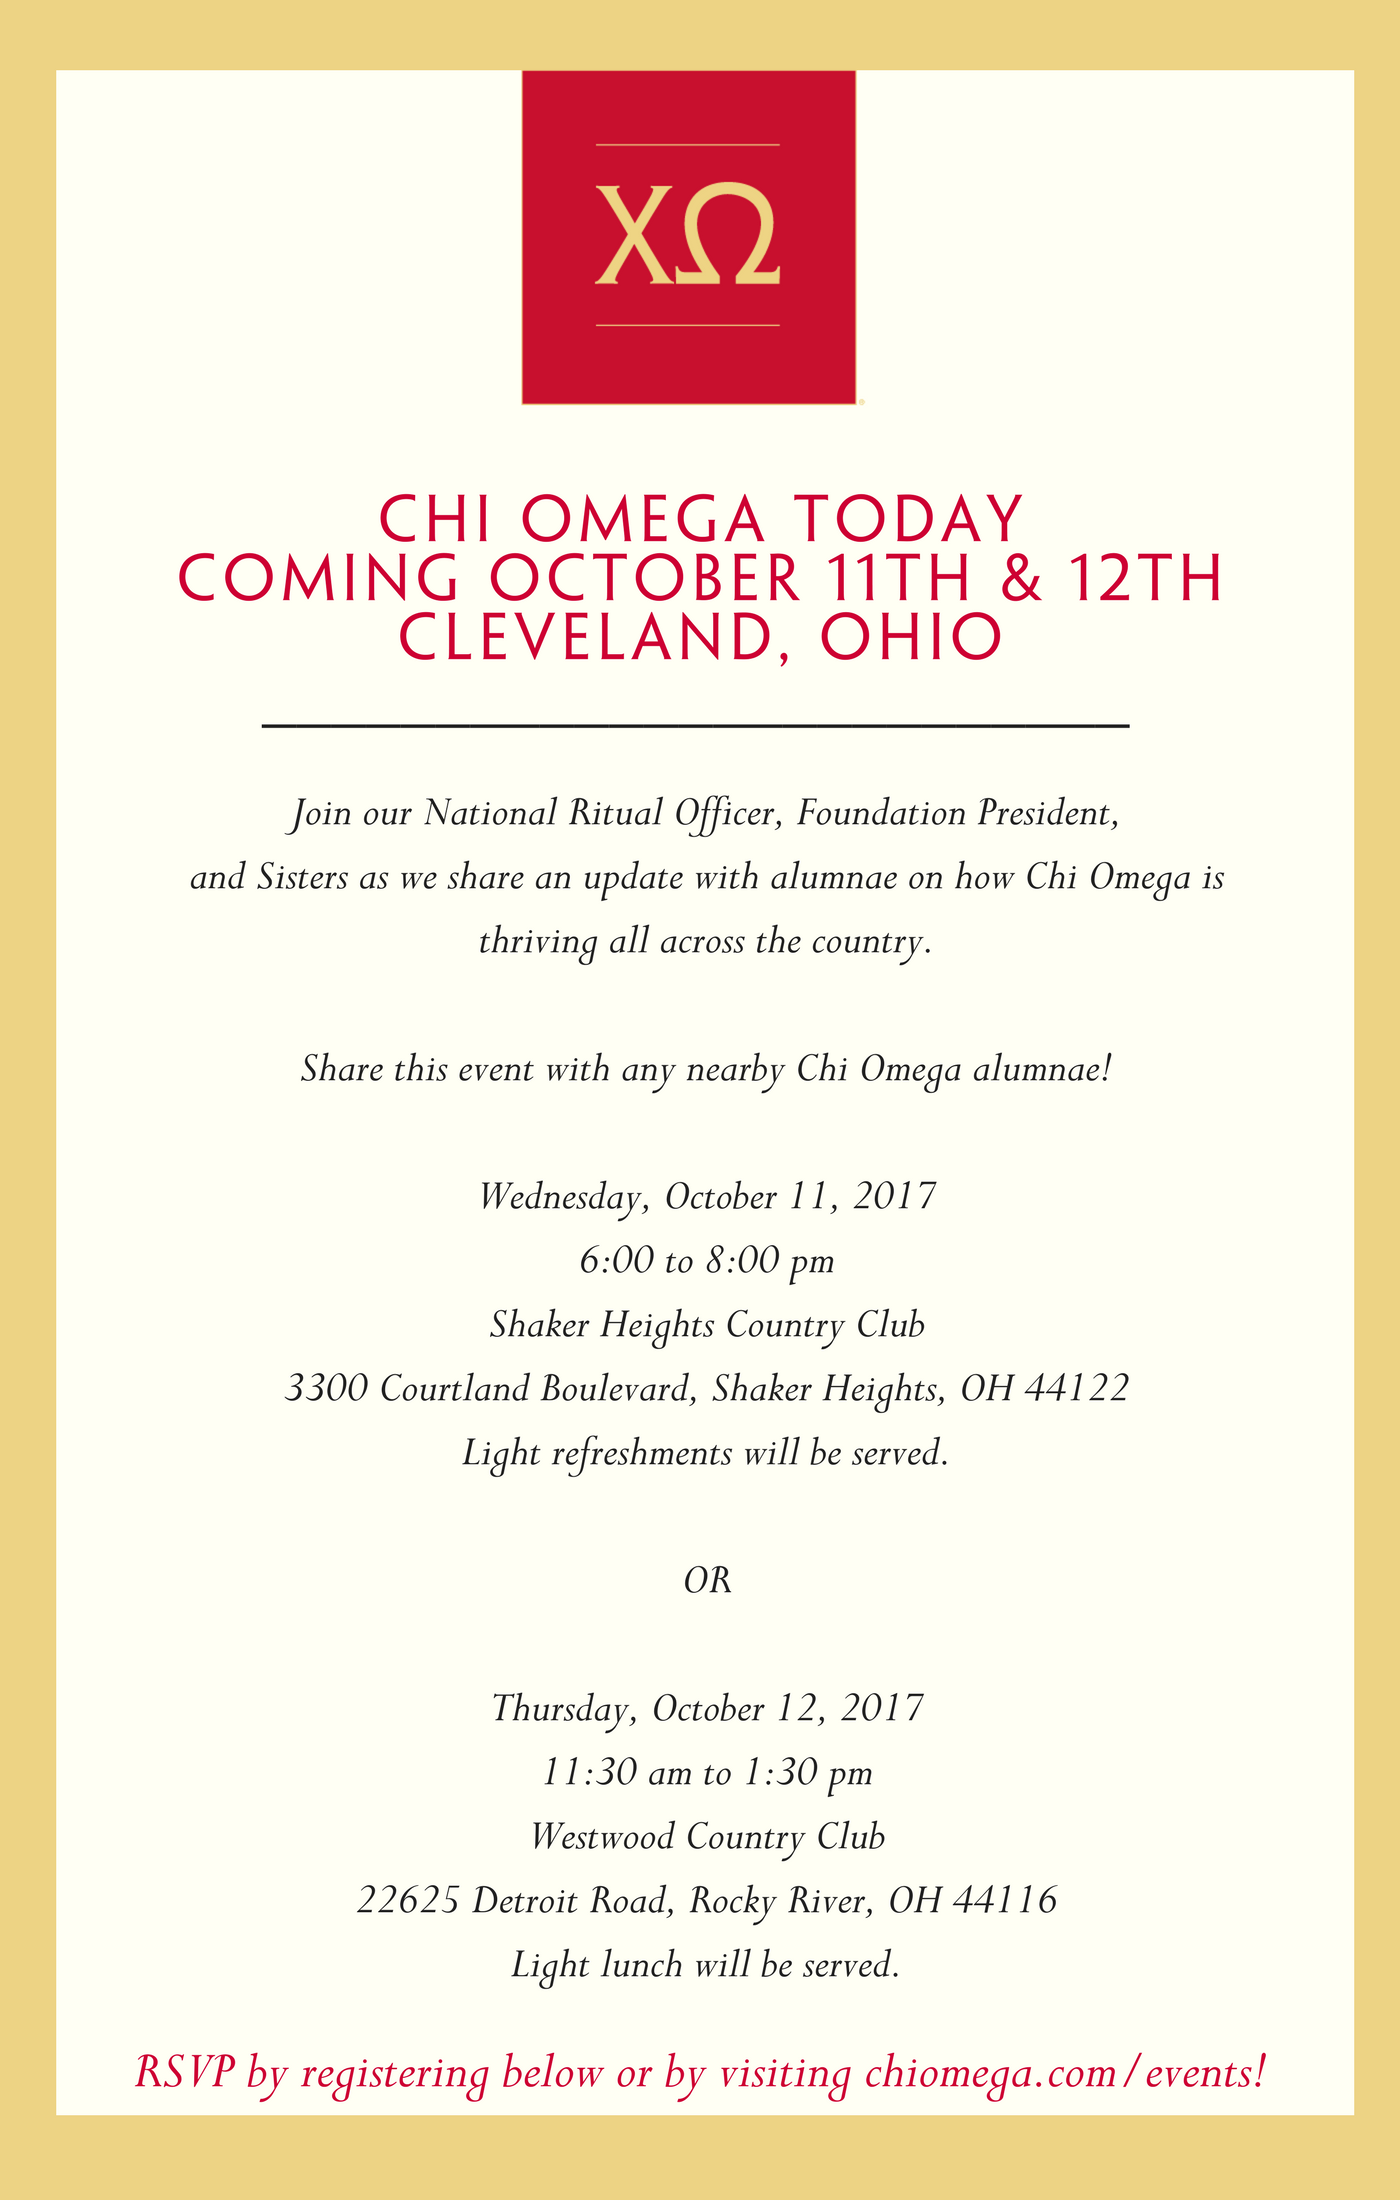 Chi O Today Cleveland Email Invite